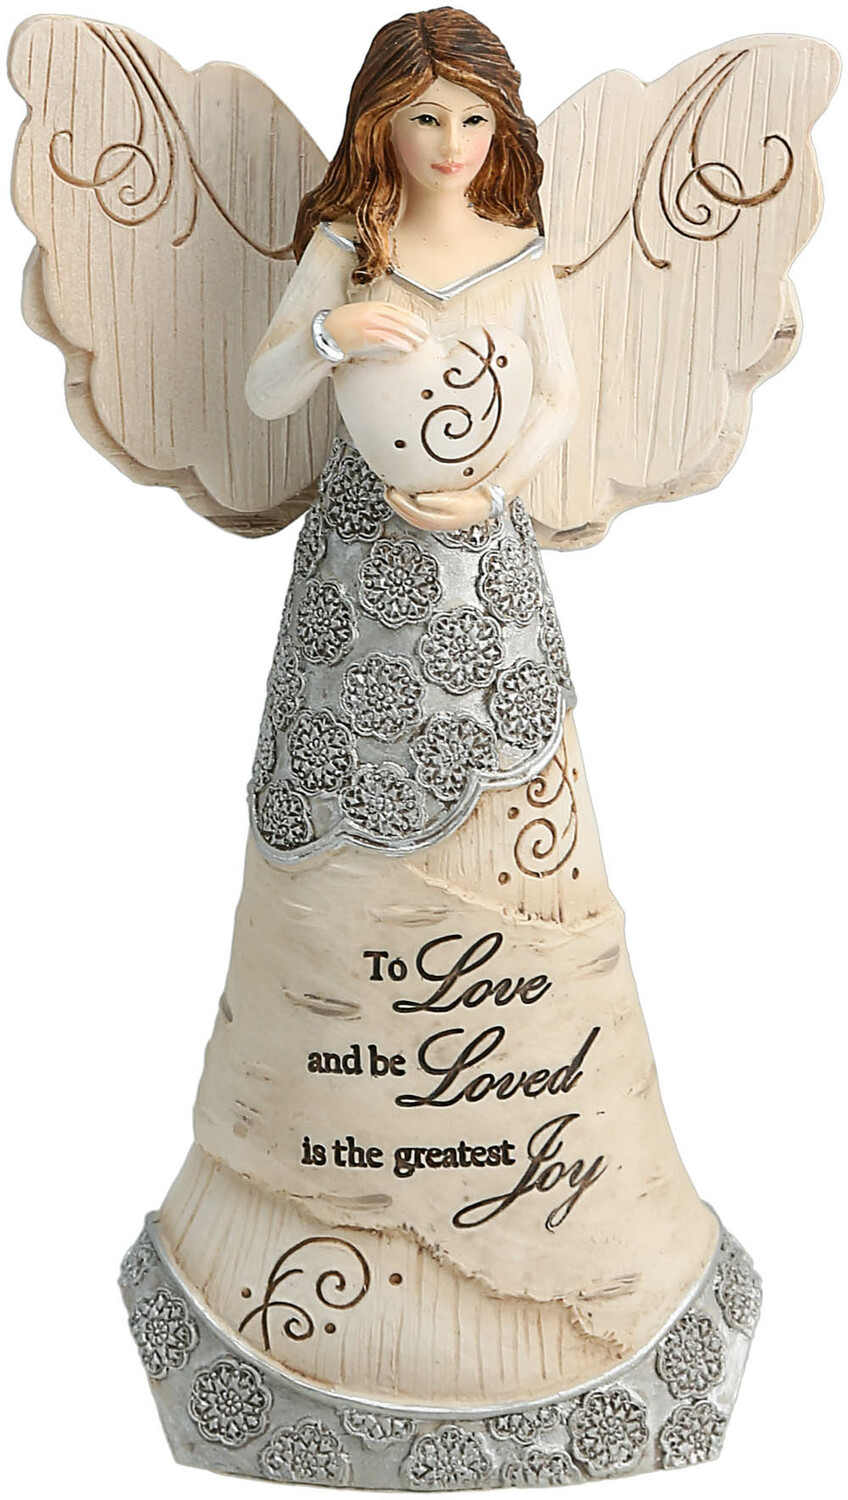 "To Love by Elements - To Love - 6"" Angel Holding Heart"